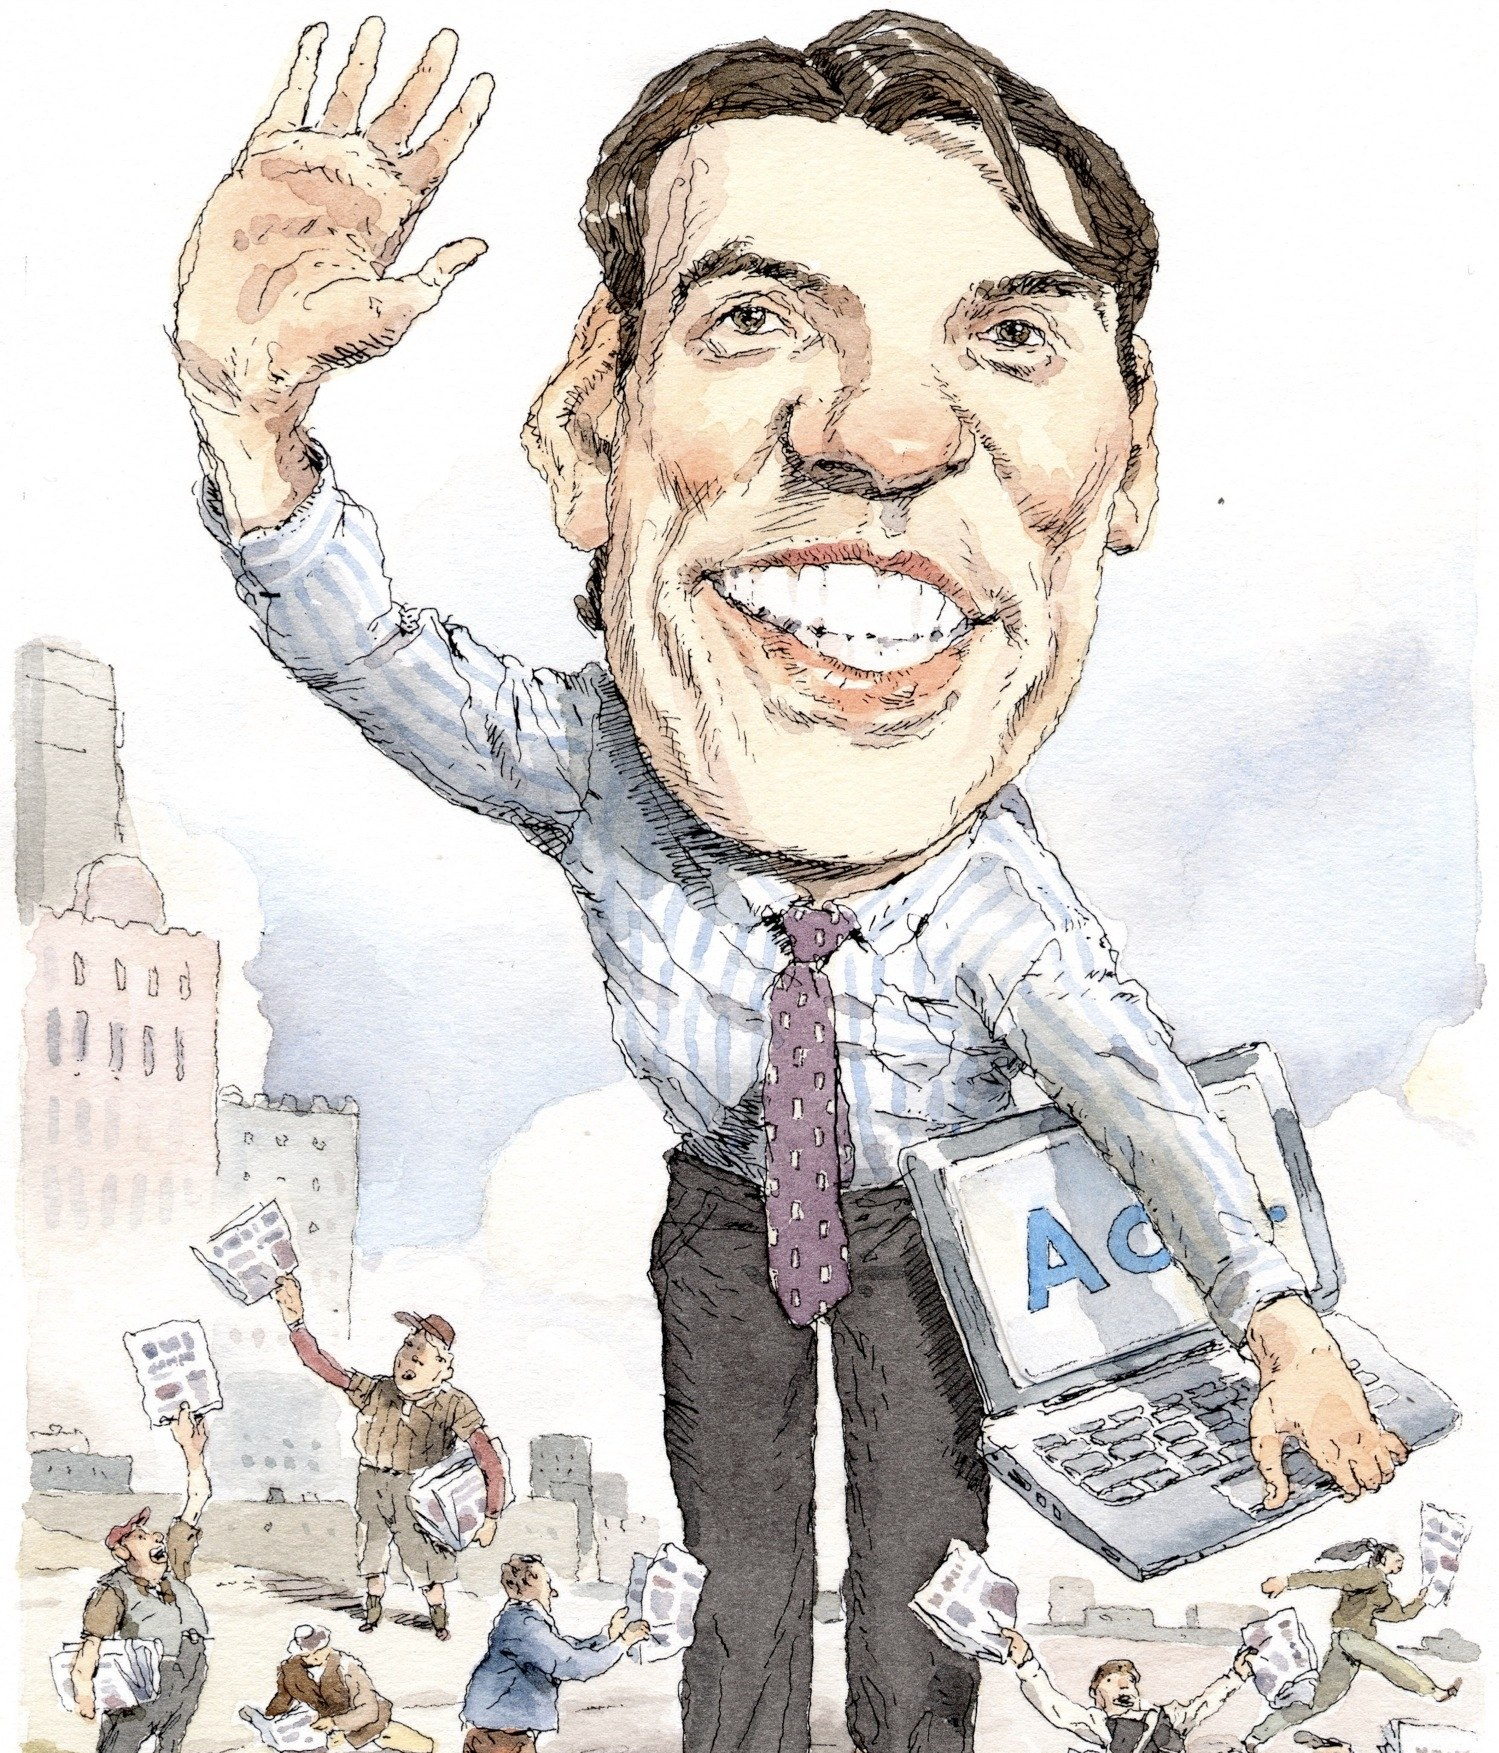 Illustration for The New Yorker by John Cuneo